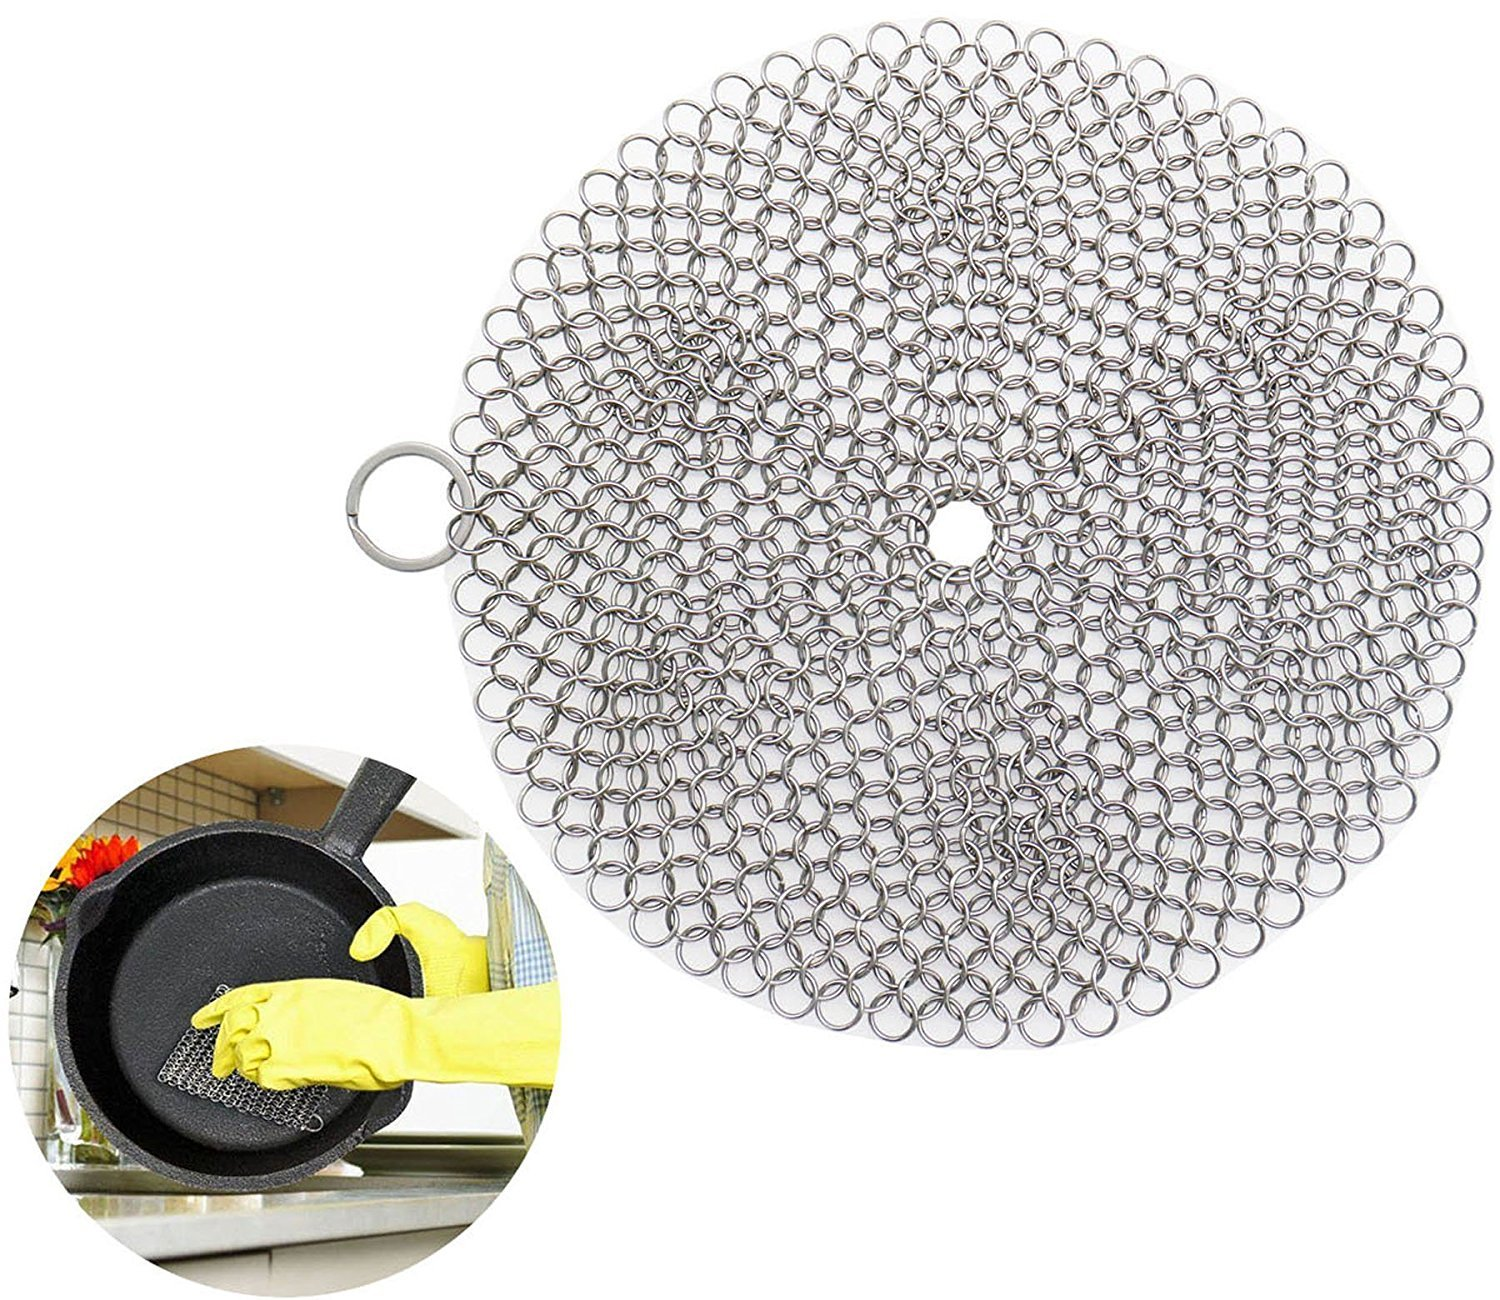 Cast Iron Cleaner, Steel Chainmail Scrubber Cookware Cleaner For Pots, Skillets, Griddle Pans, BBQ Grills and More With Hanging Ring, Round